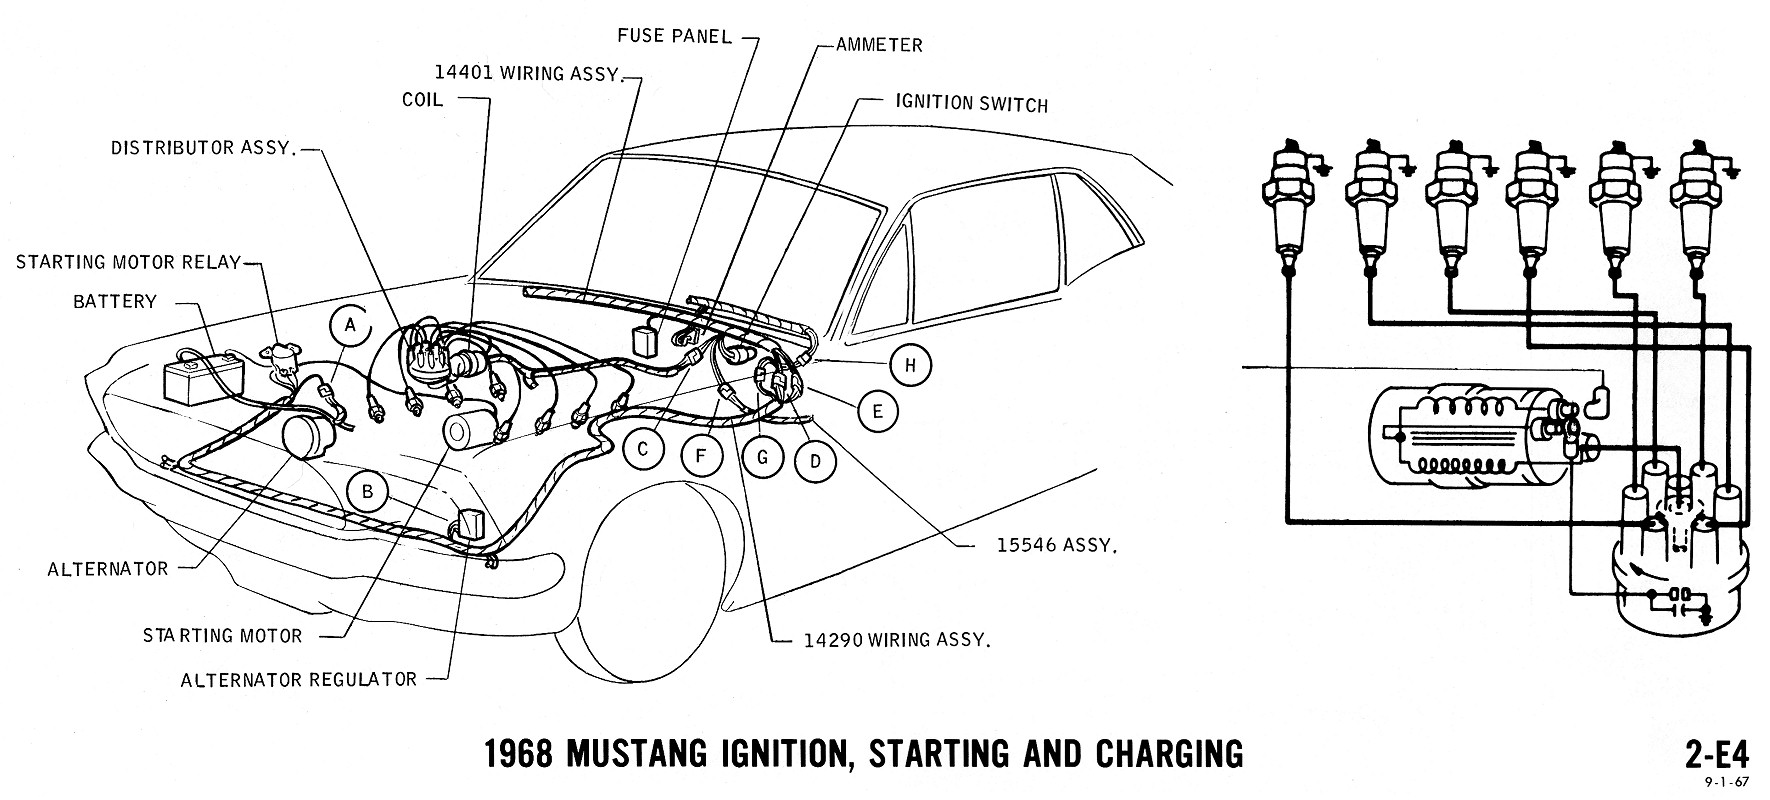 1968 mustang wiring diagram ignition starting charging 2 1968 mustang wiring diagrams and vacuum schematics average joe